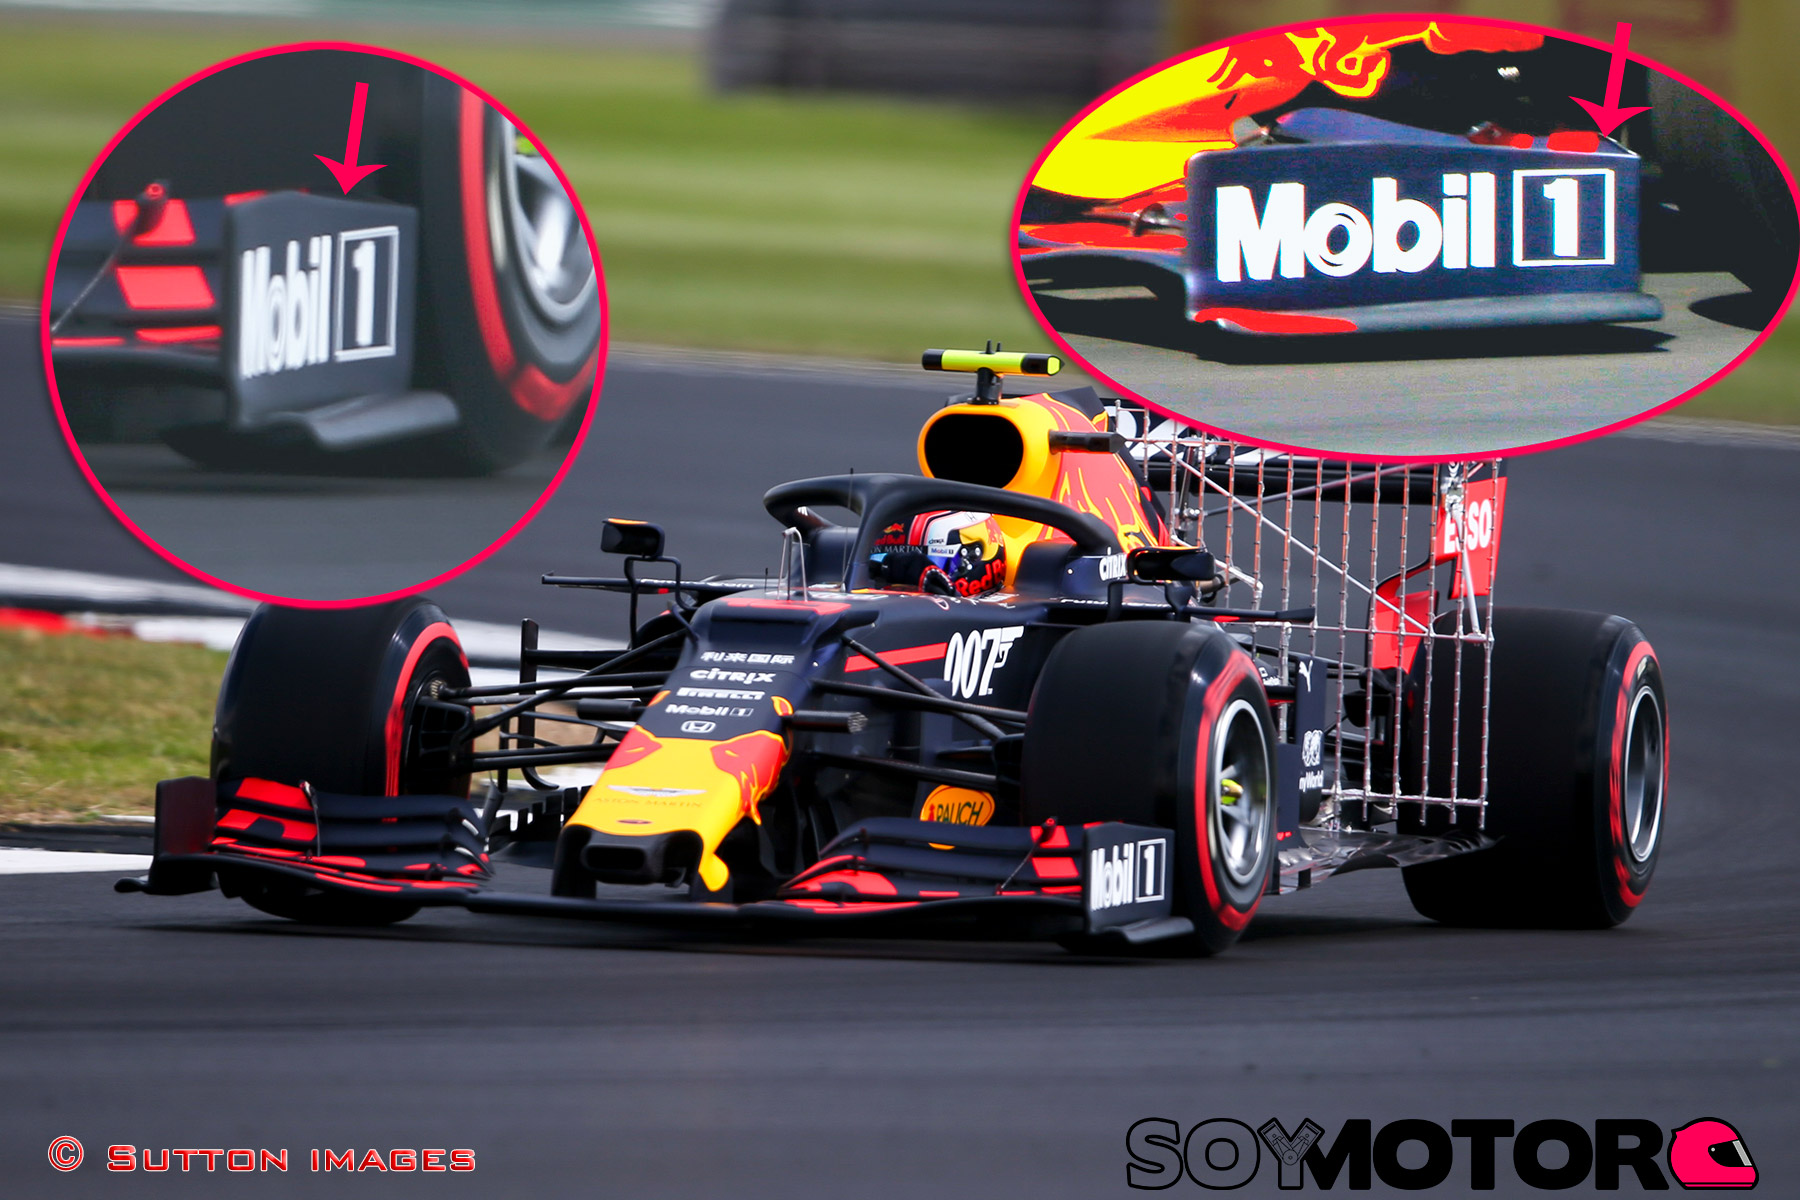 red-bull-endplate-ala-delantera_0.jpg